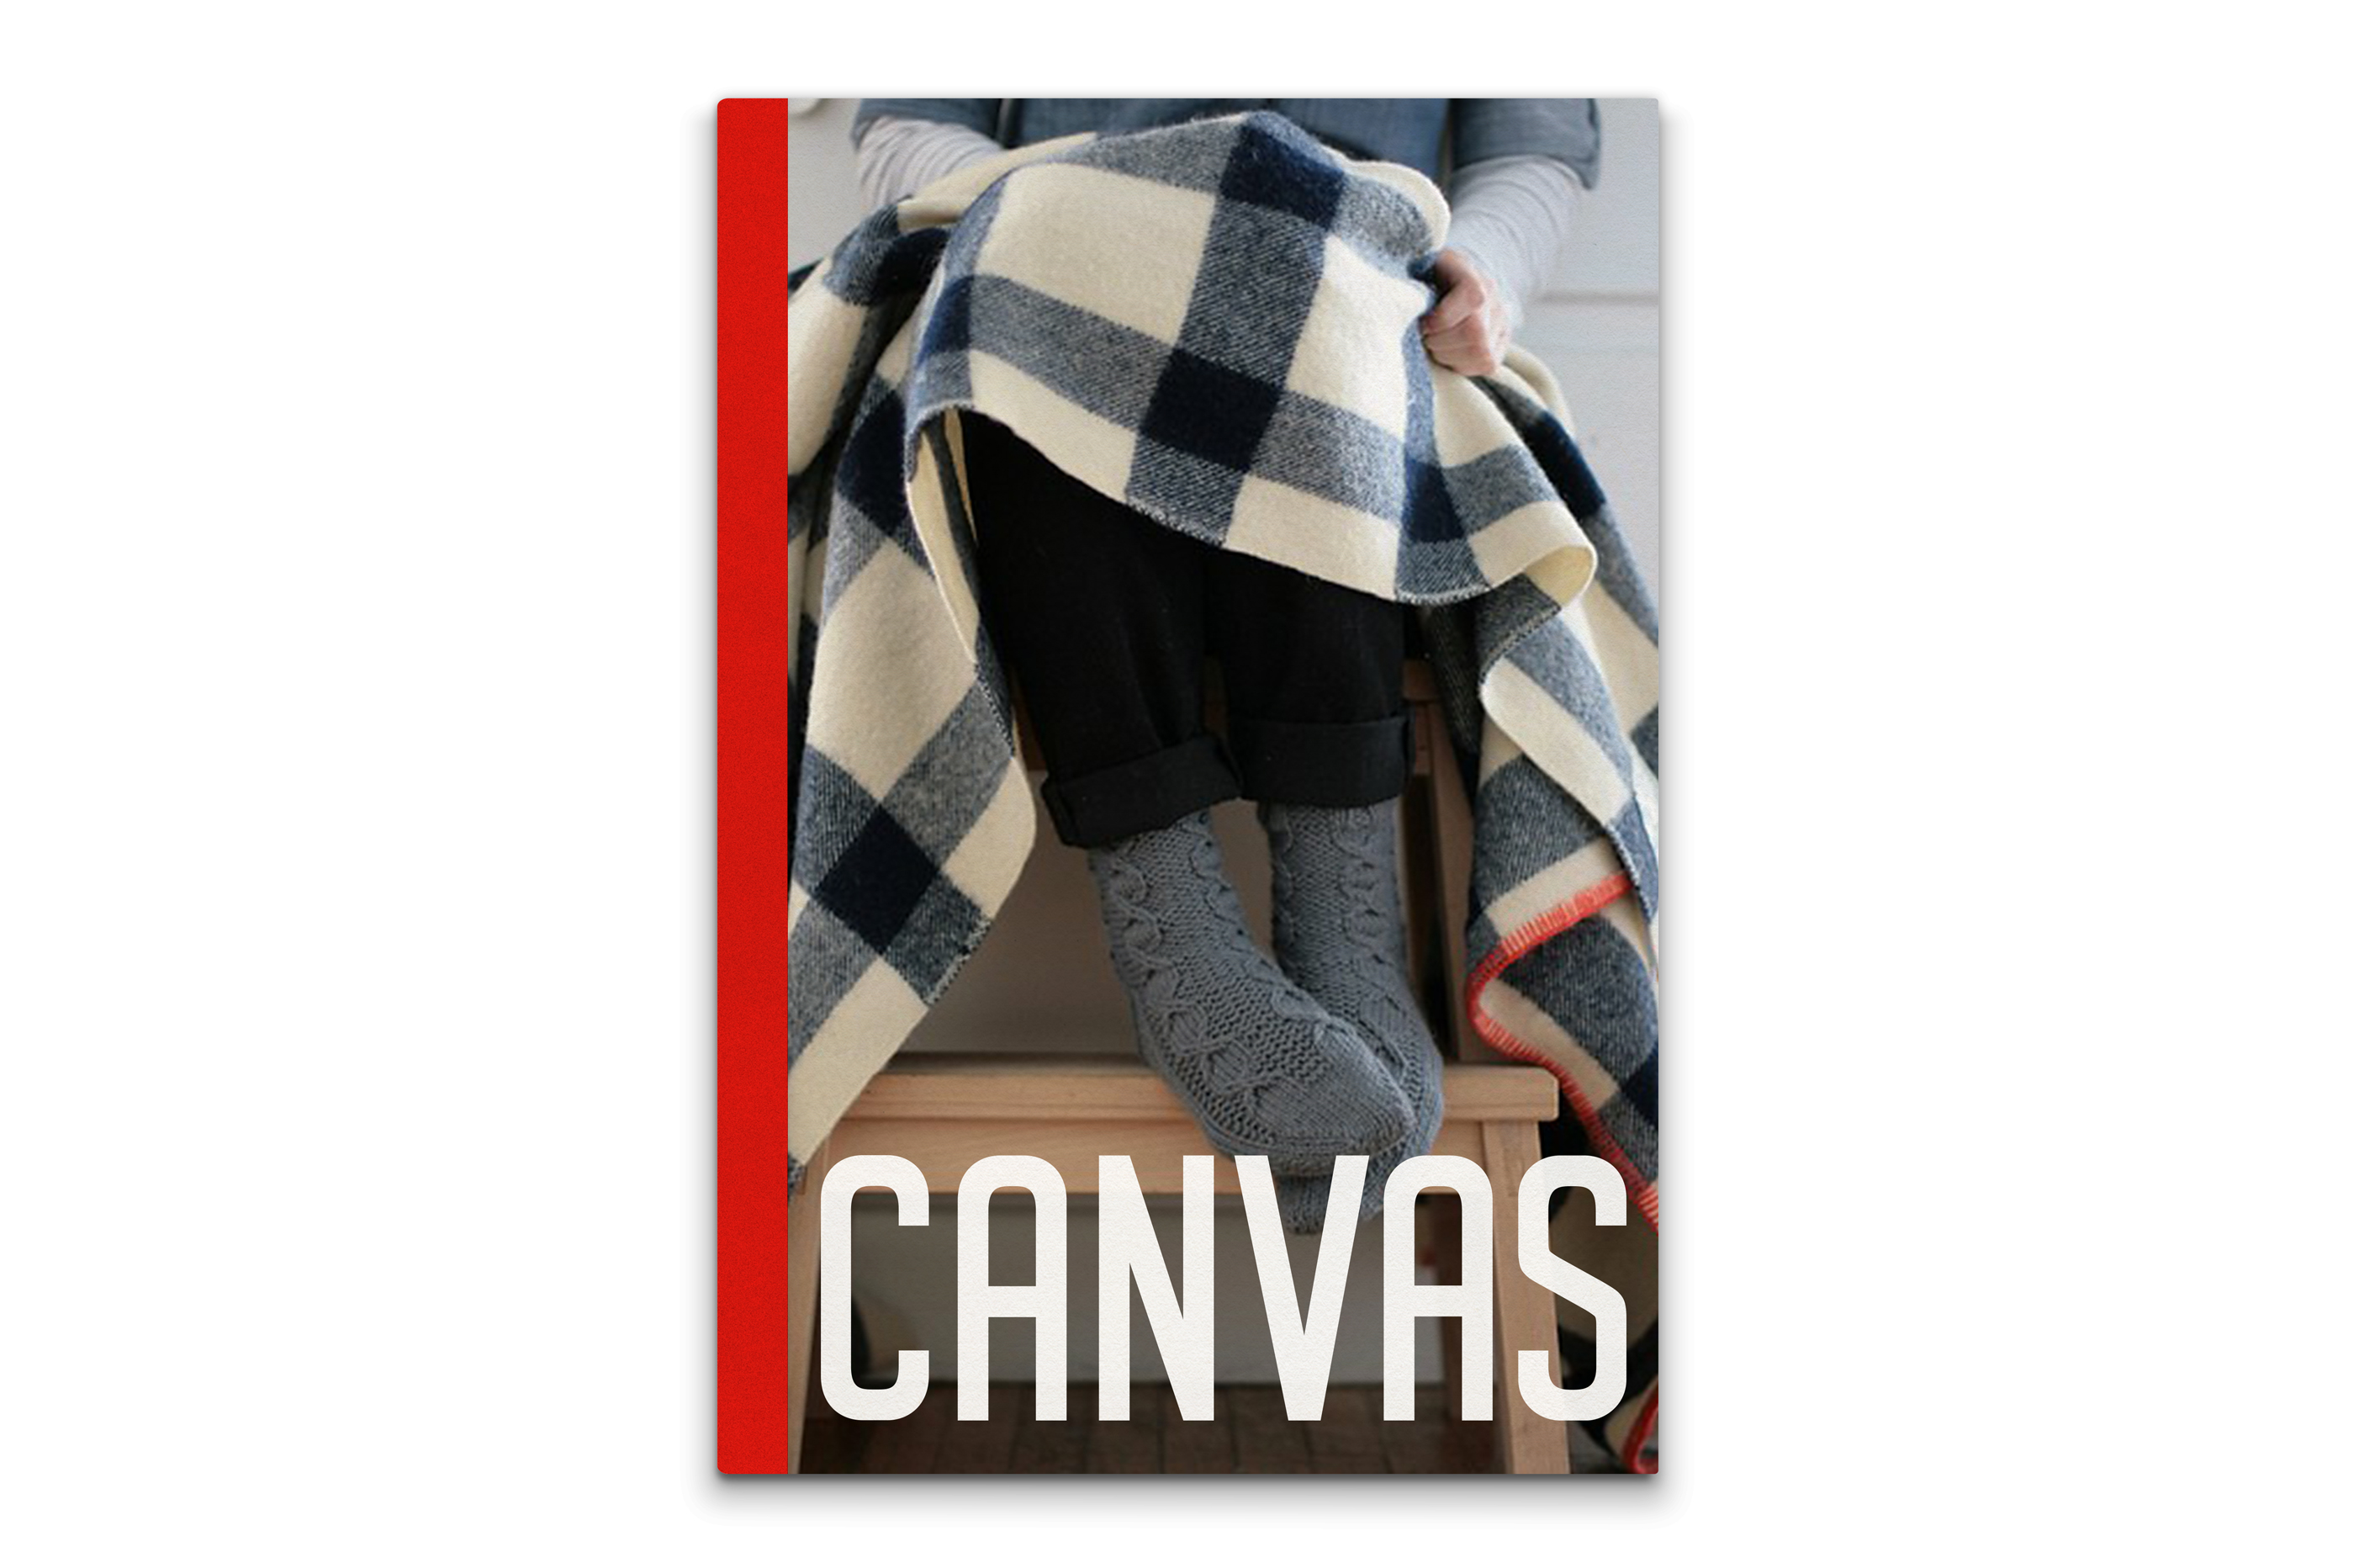 canvas christian singles Best sellers wall art for home and office decor discover canvas art prints, photos, mural, big canvas art and framed wall art in greatbigcanvascom's varied collections.